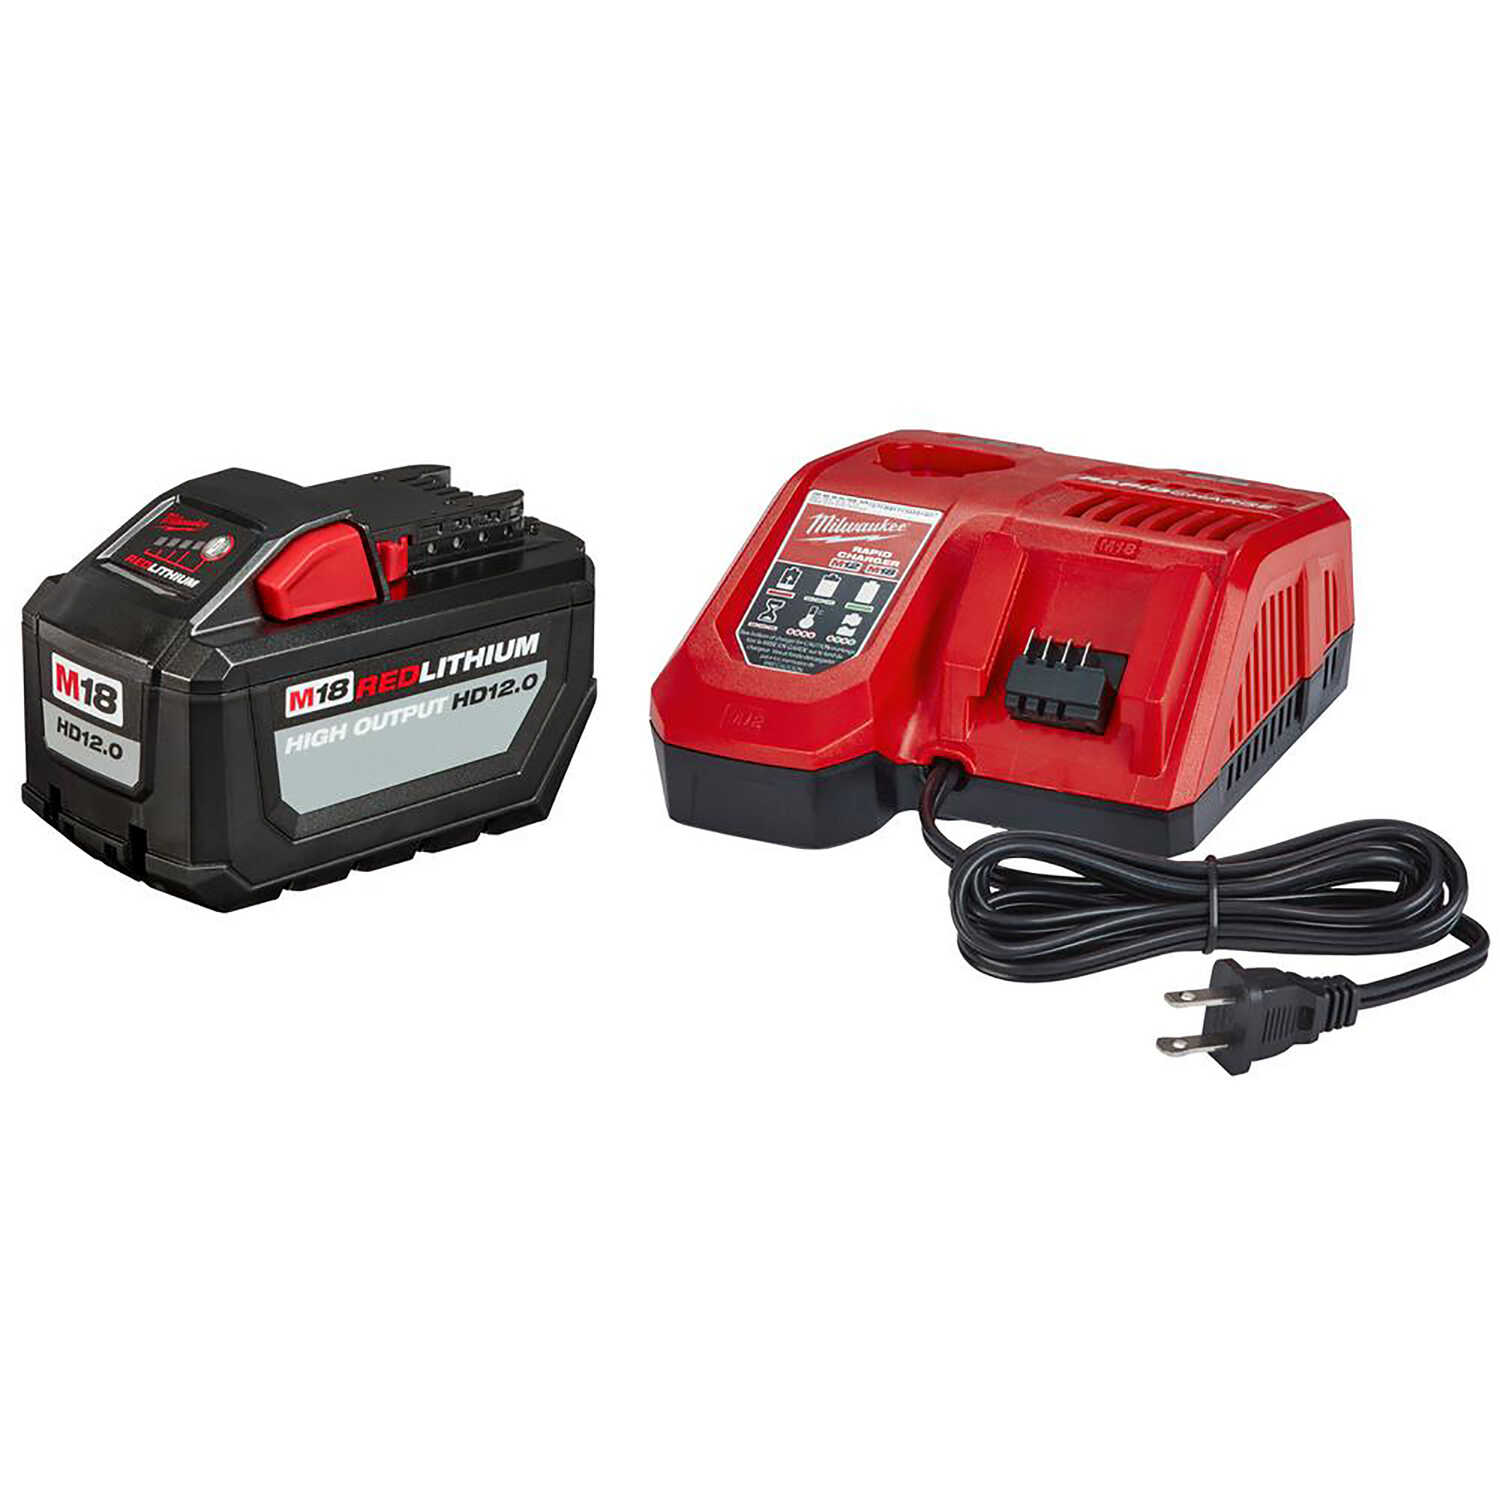 Milwaukee  M18 REDLITHIUM  HD12.0  12 Ah Lithium-Ion  Starter Kit  Battery and Charger  2 pc.